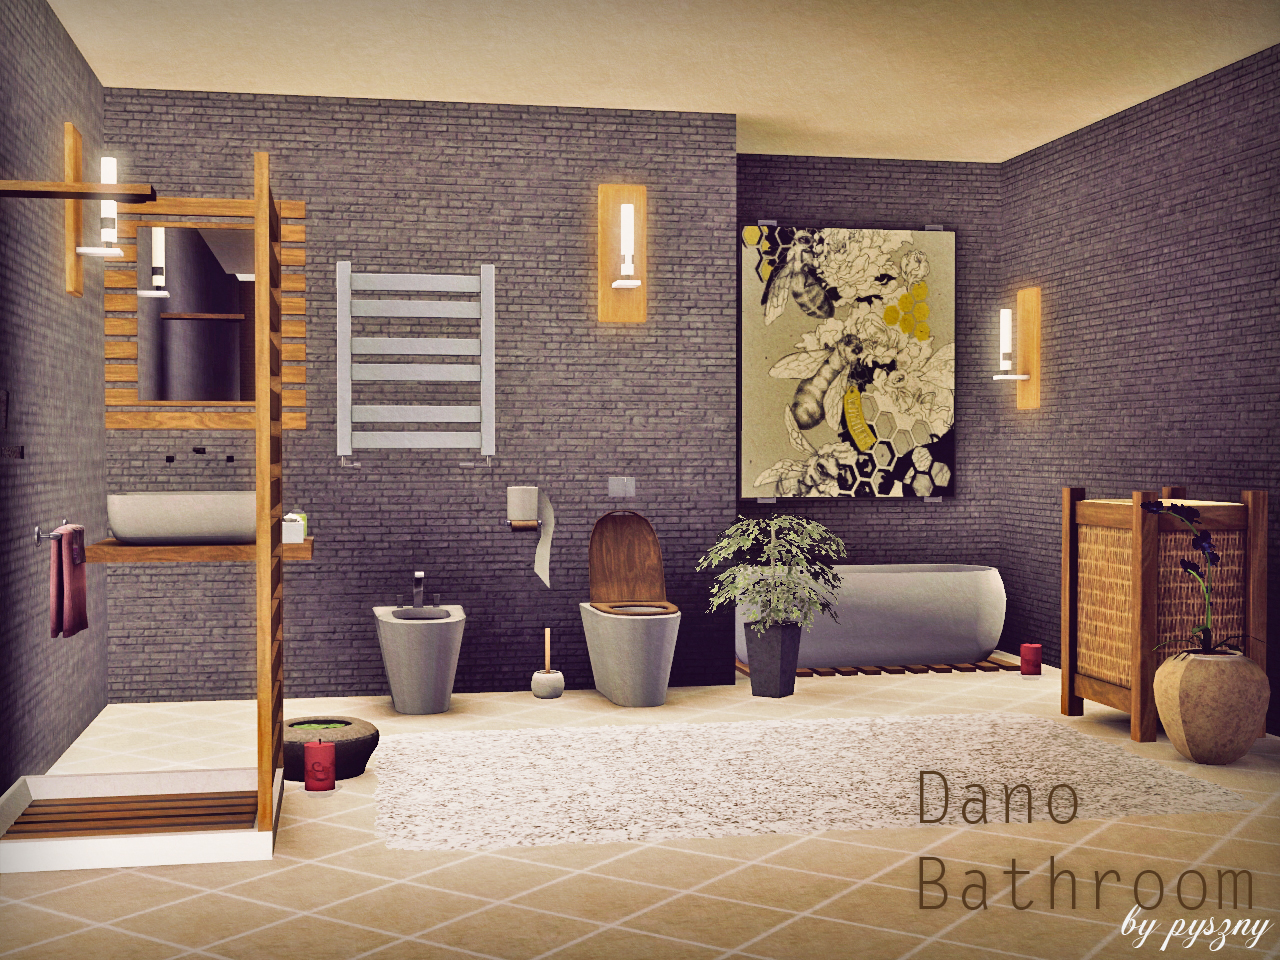 my sims 3 blog dano bathroom by pyszny